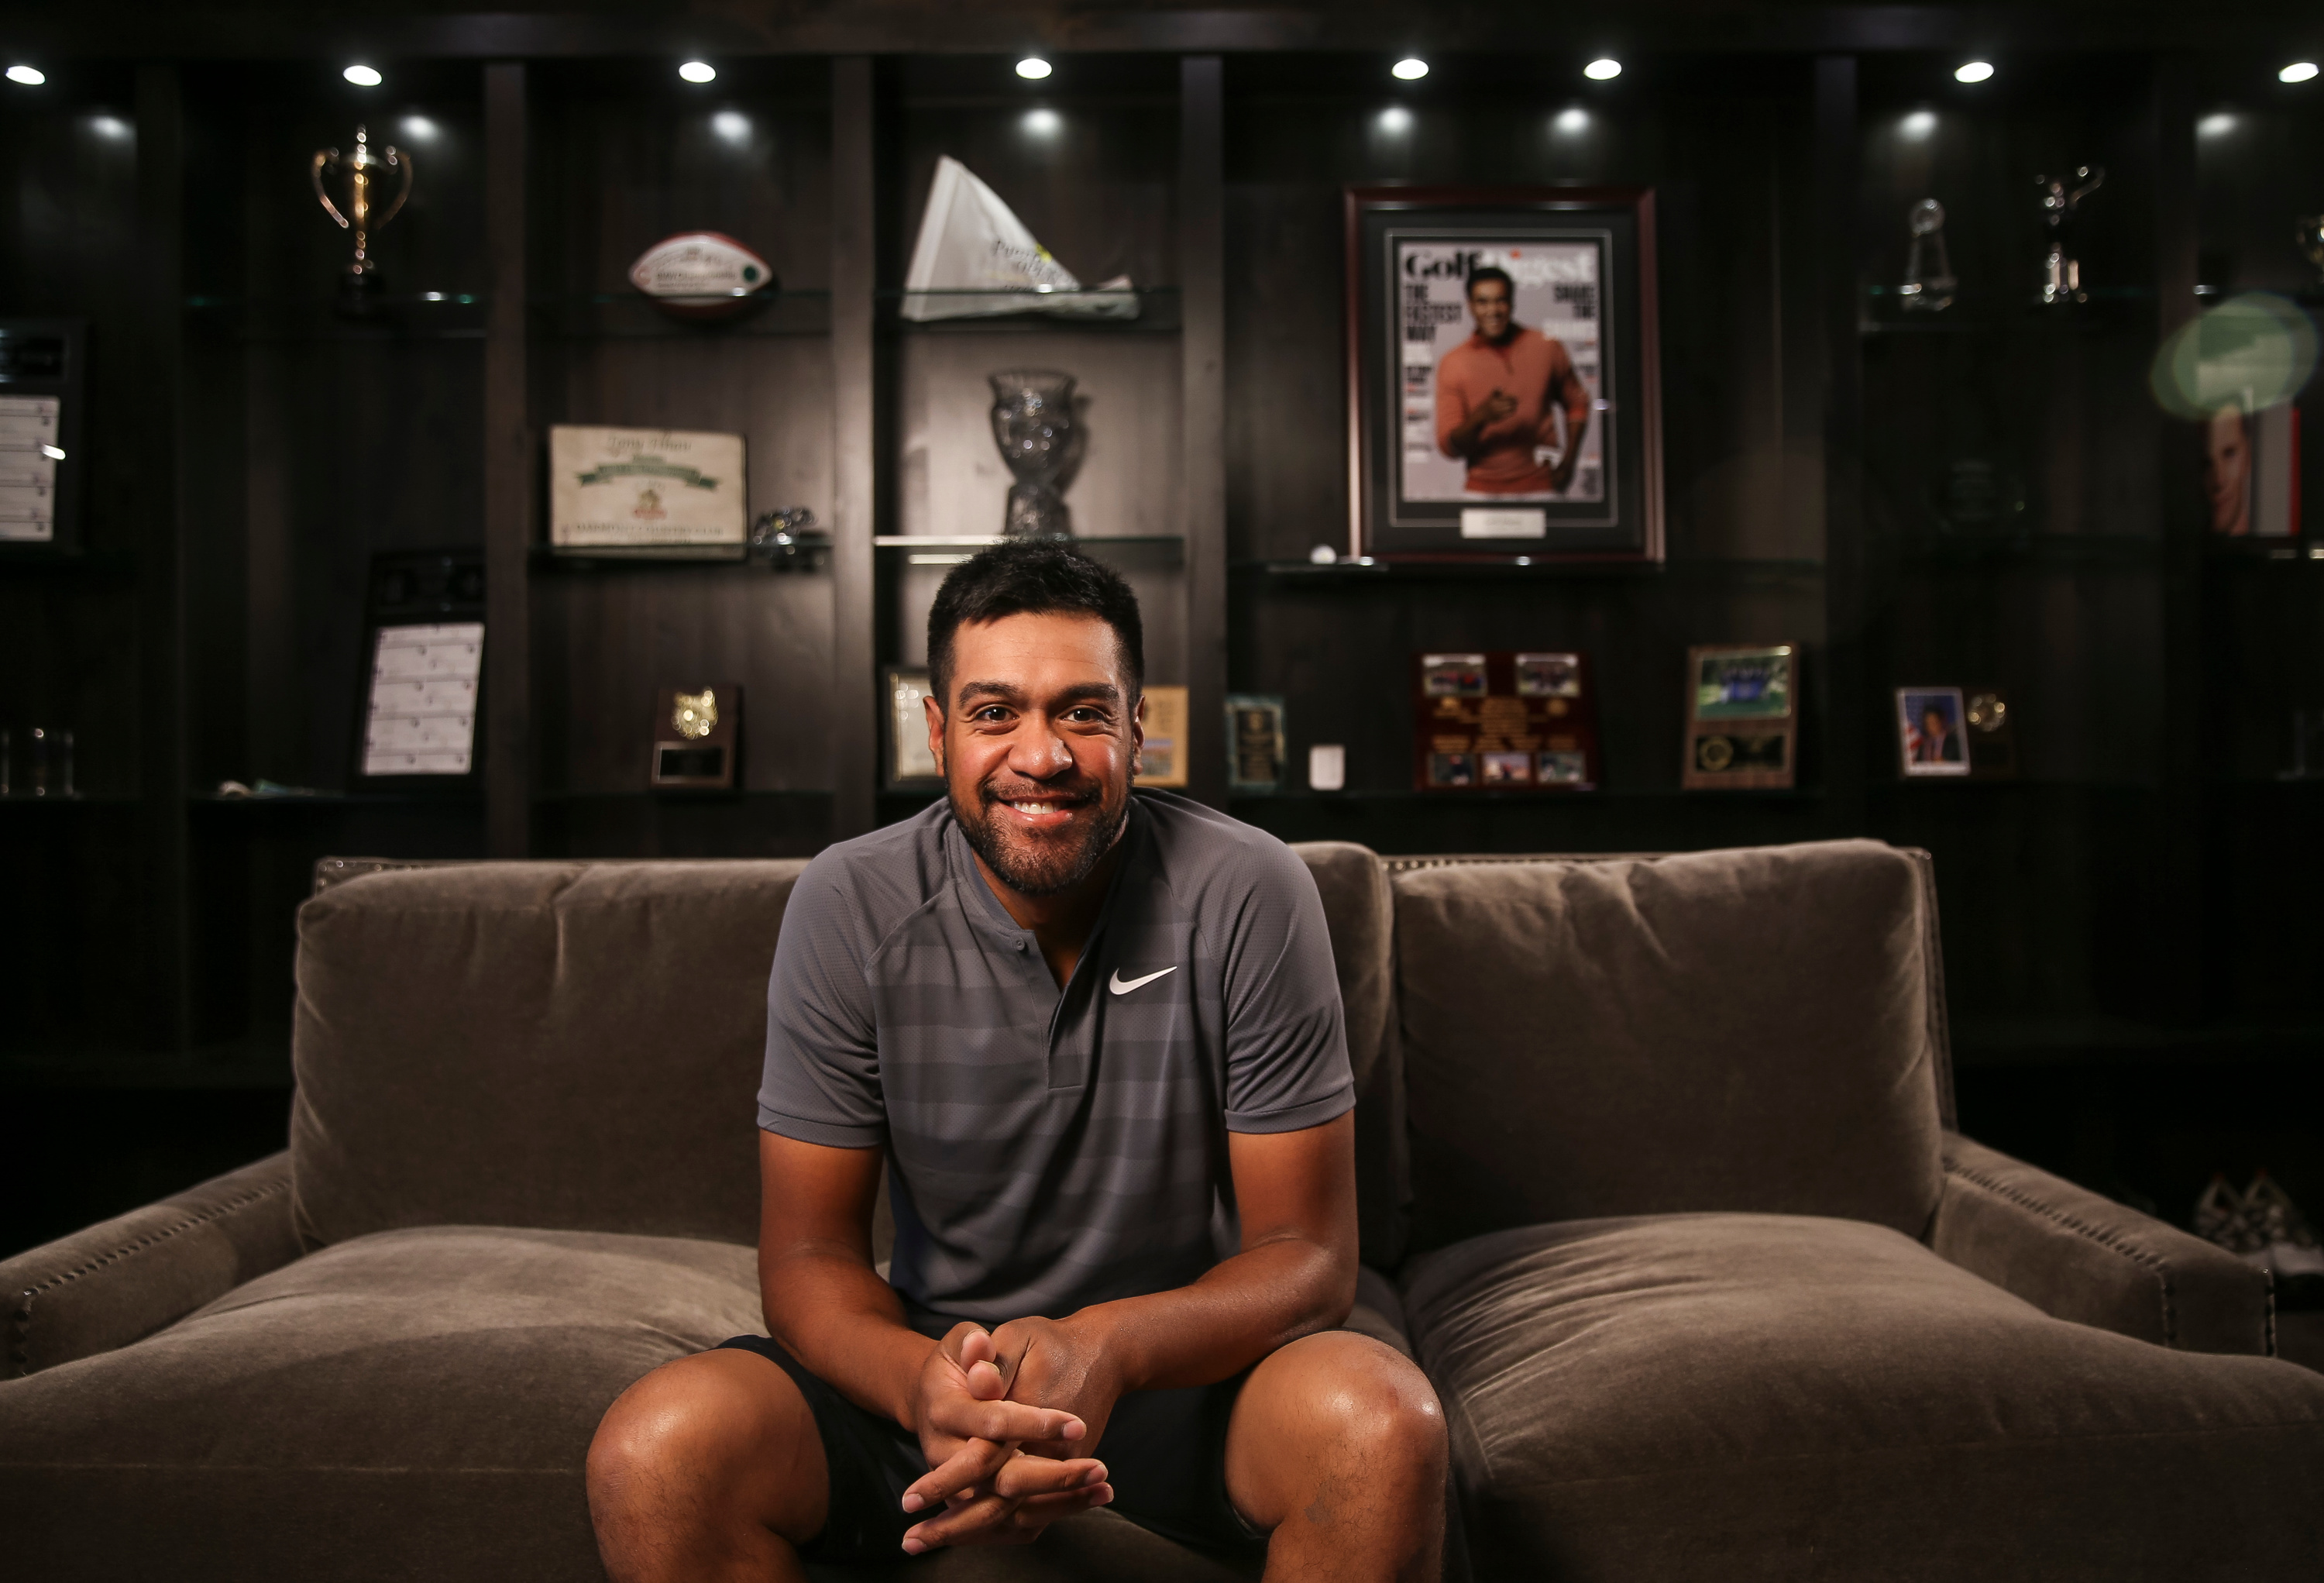 PGA golfer Tony Finau poses for a photo at his home in Lehi on Tuesday, Feb. 6, 2018.